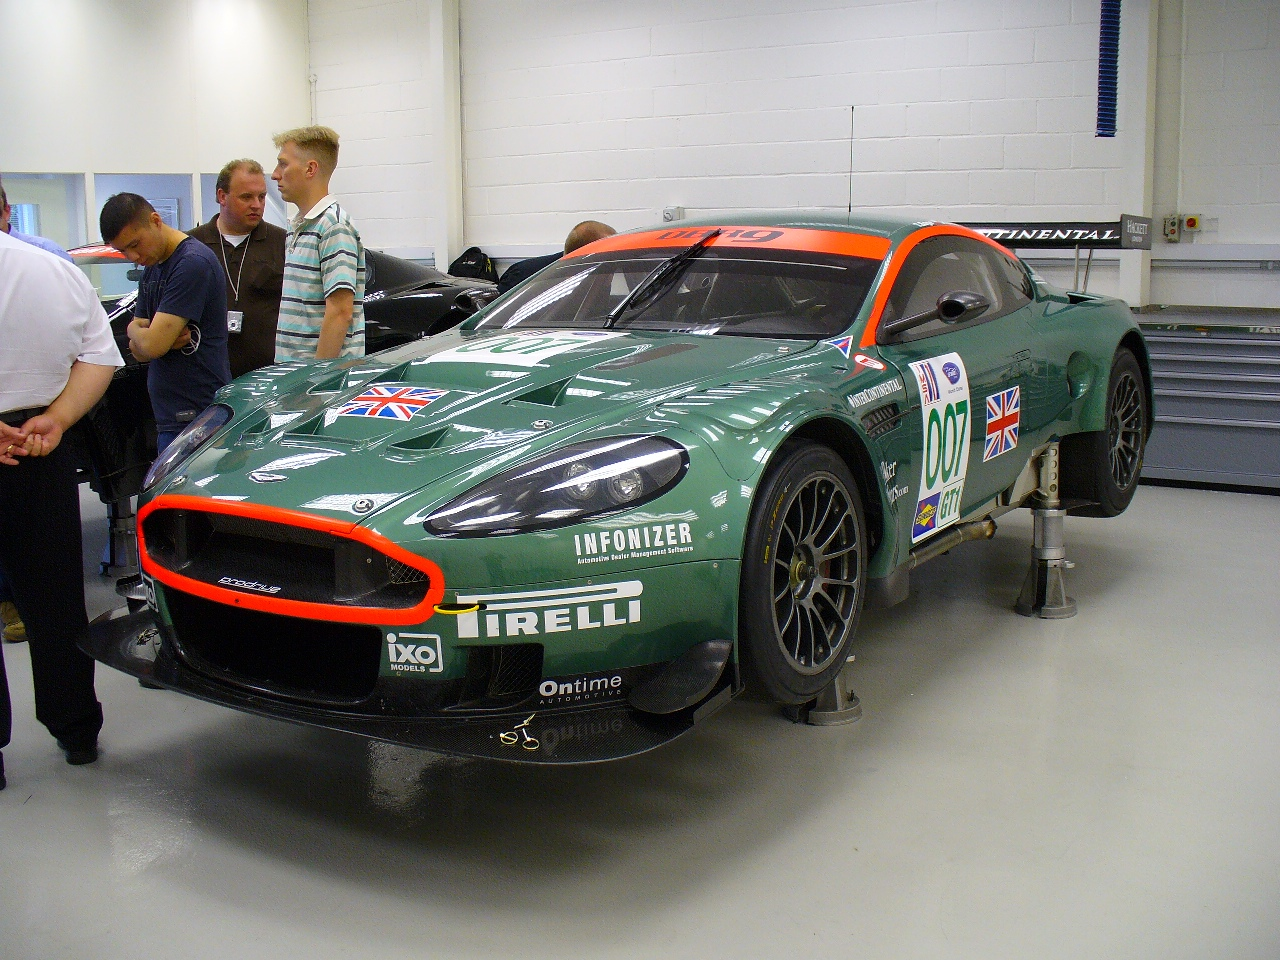 http://upload.wikimedia.org/wikipedia/commons/b/bf/Aston_Martin_DBR9_GT1_2006_No_007.jpg